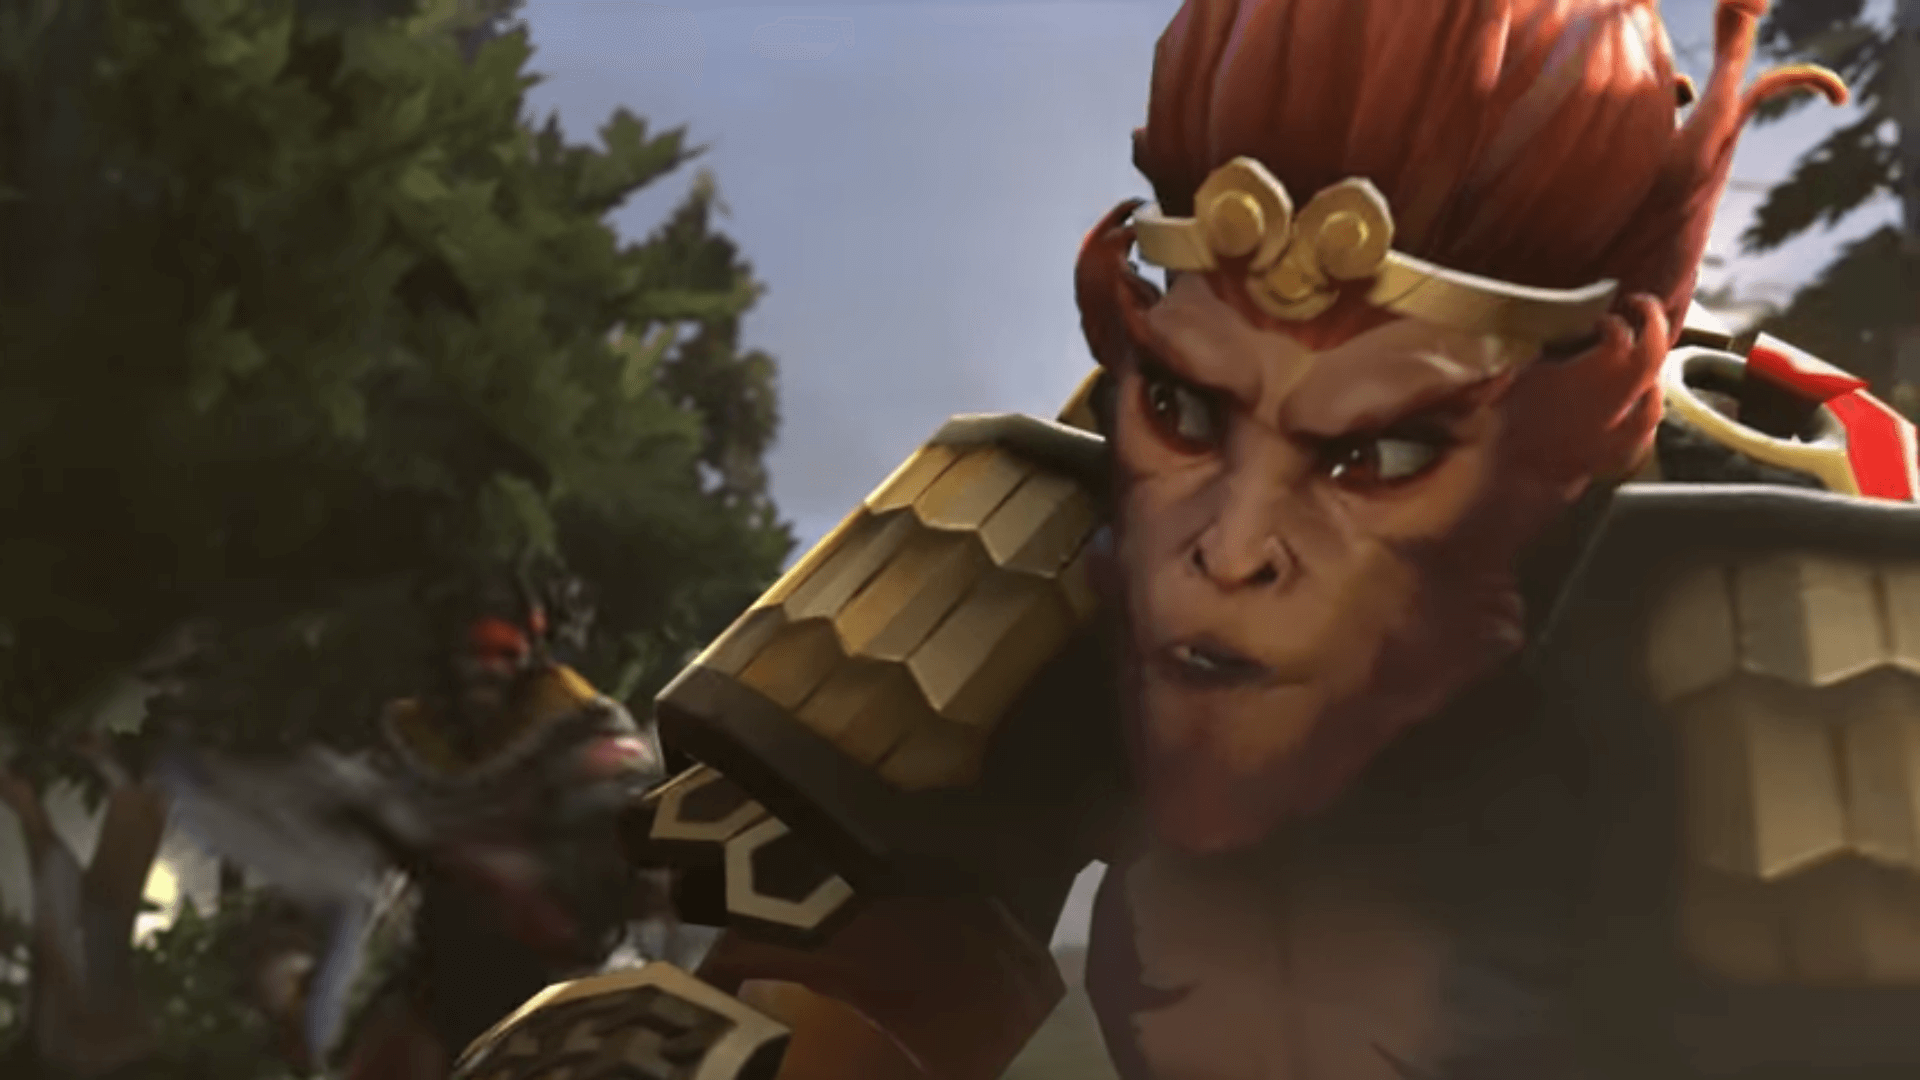 The Monkey King is coming.